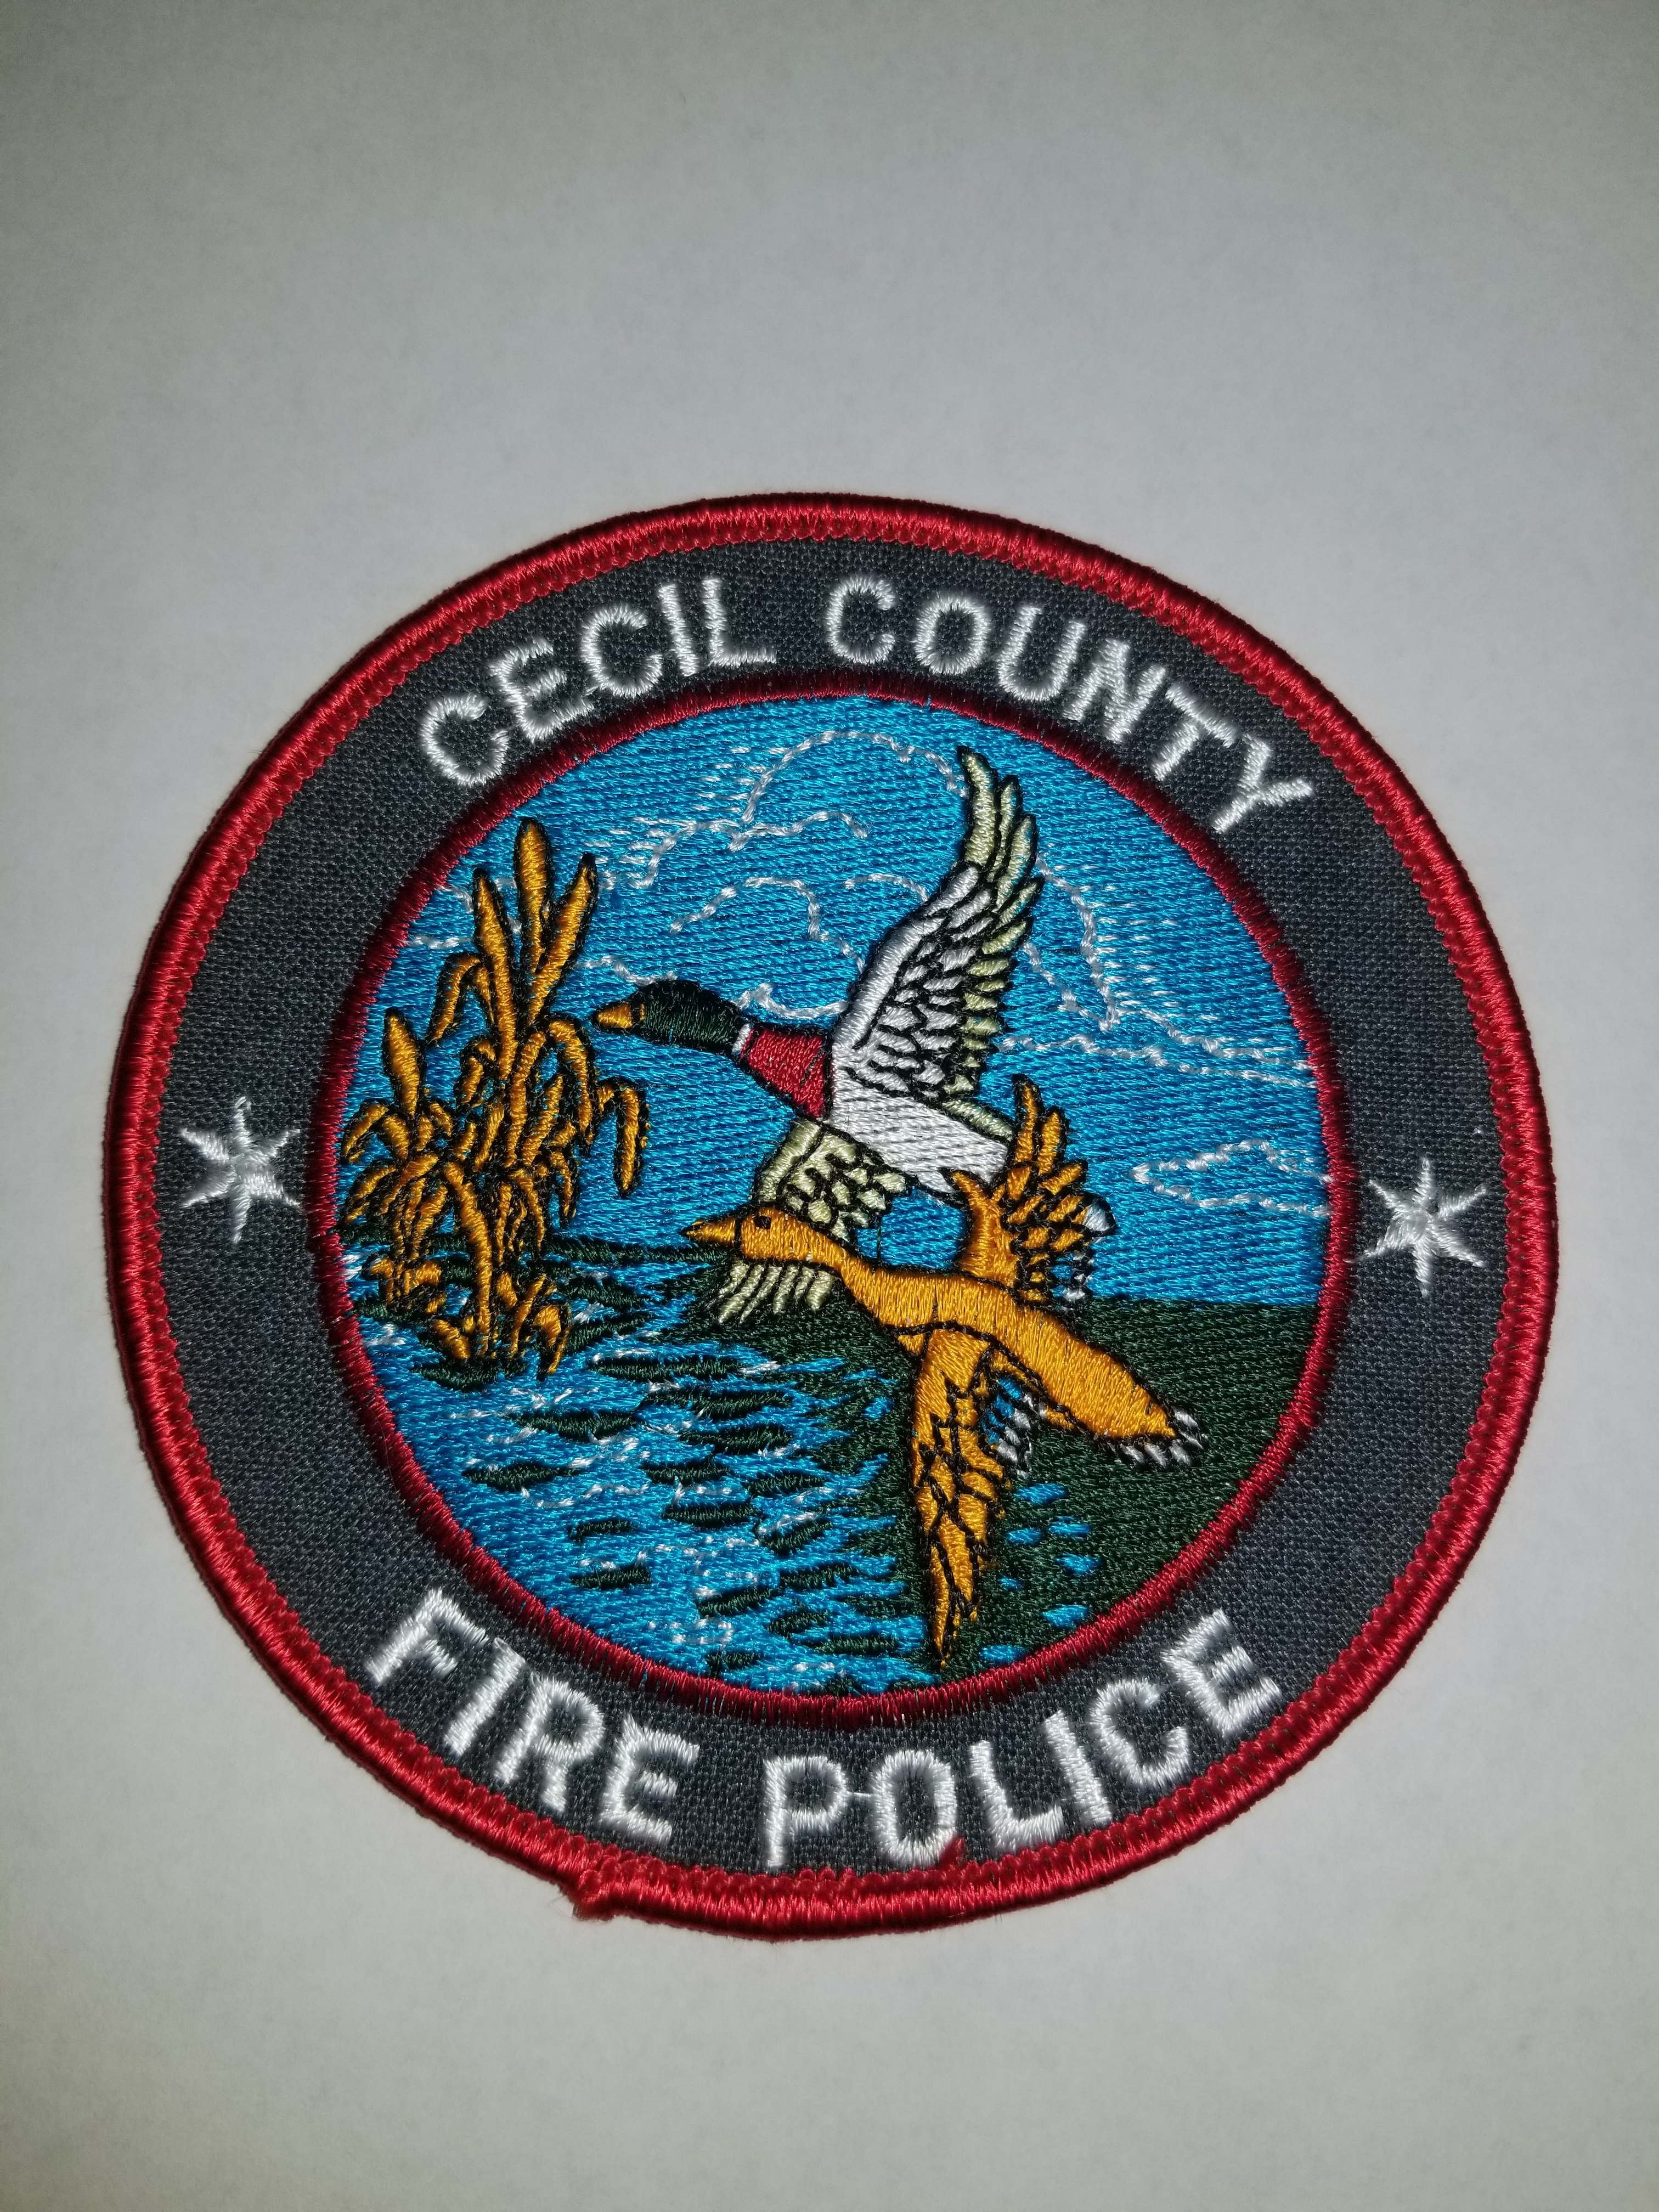 Cecil County Fire Police MD